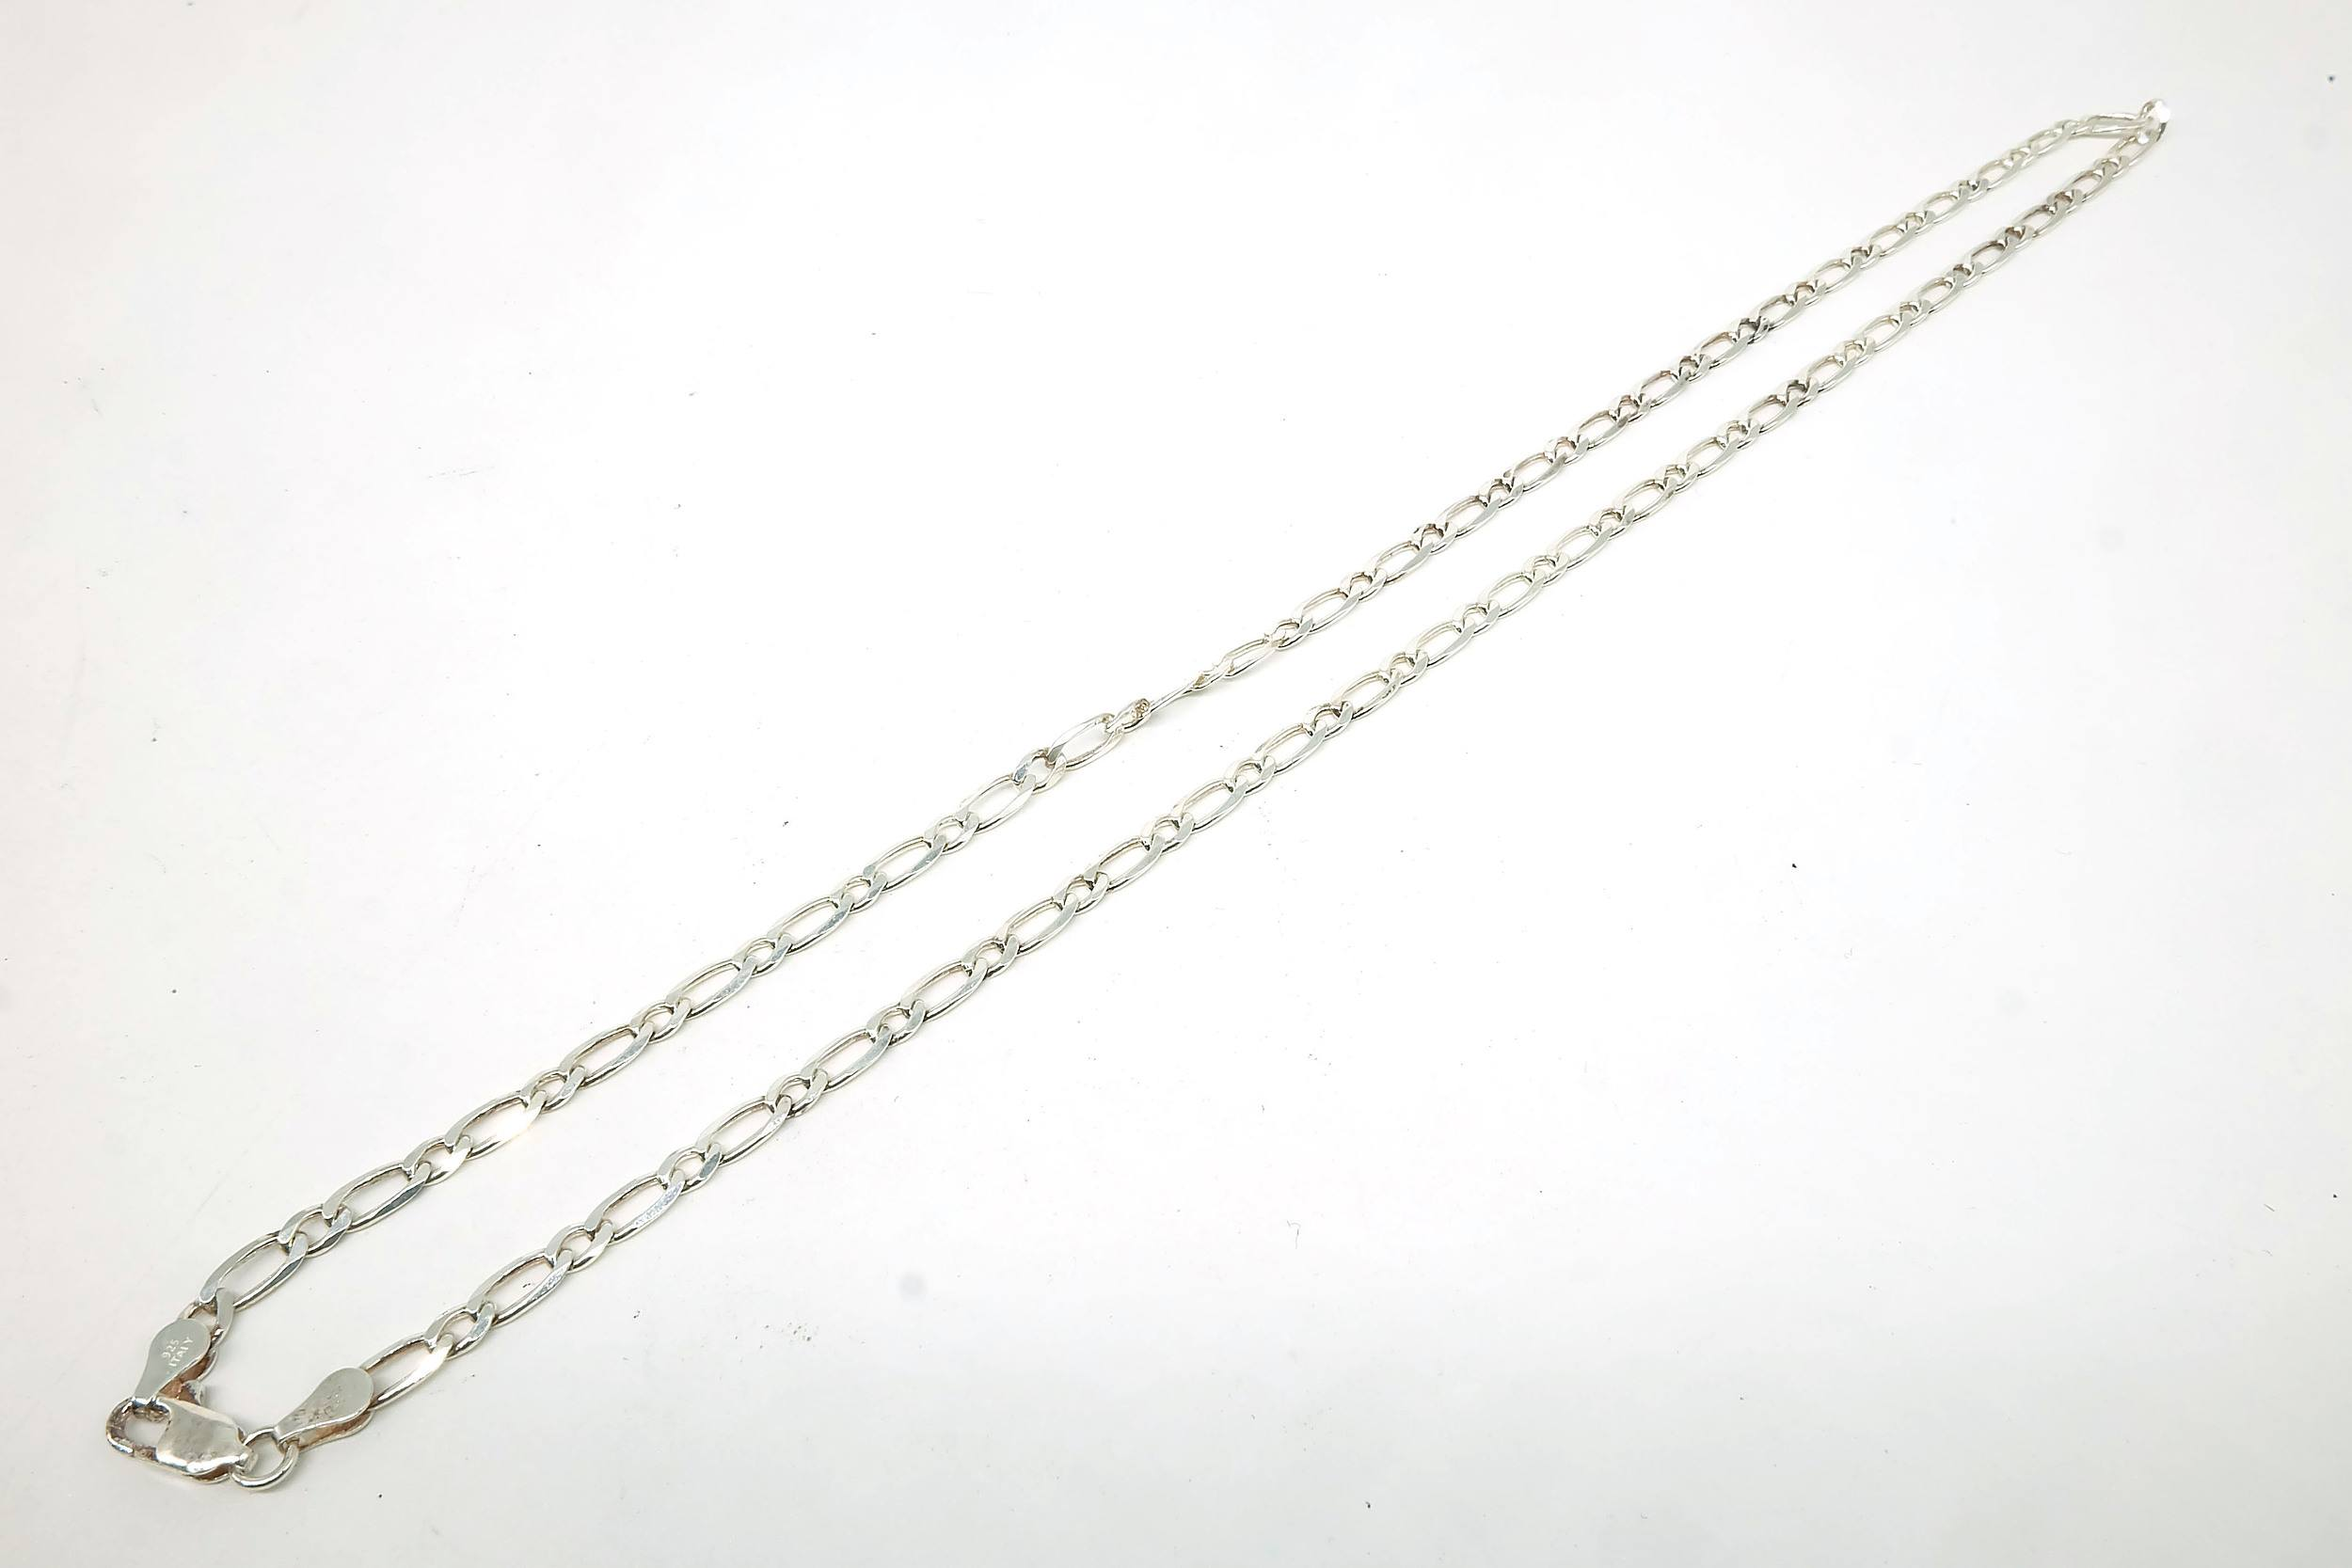 'Sterling Silver Long and Short Curb Link Chain, 10.5g'